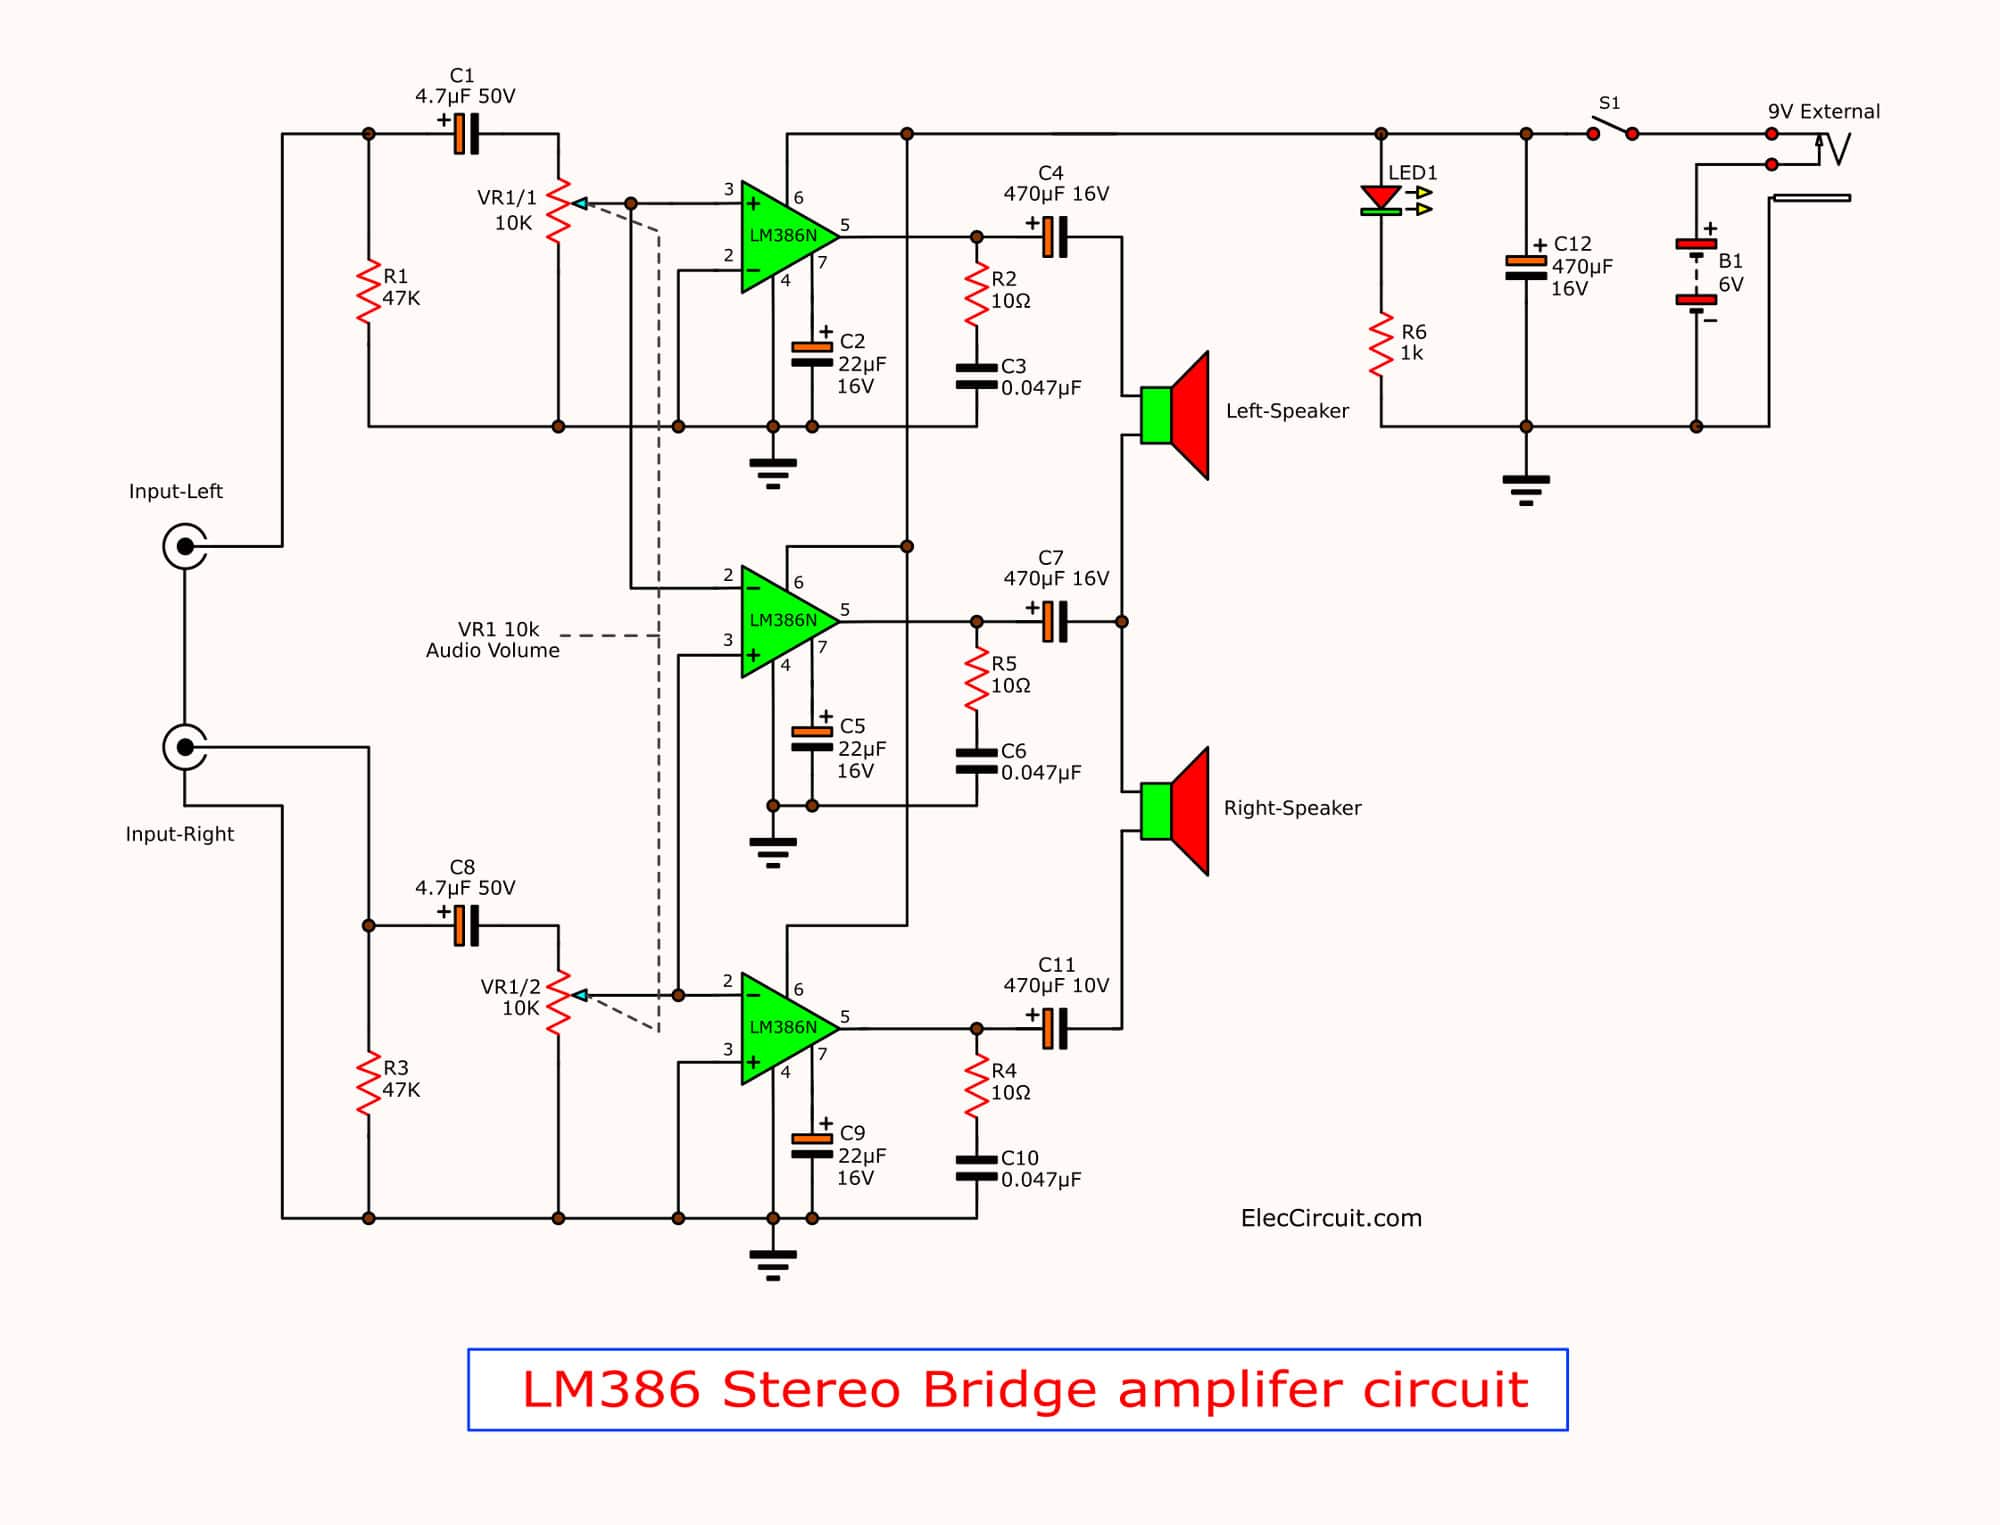 Lm386 Amplifier Stereo 2 Watts How To Build Mini Box 2w 04 Actual Size Of Single Sided Copper Pcb Layout